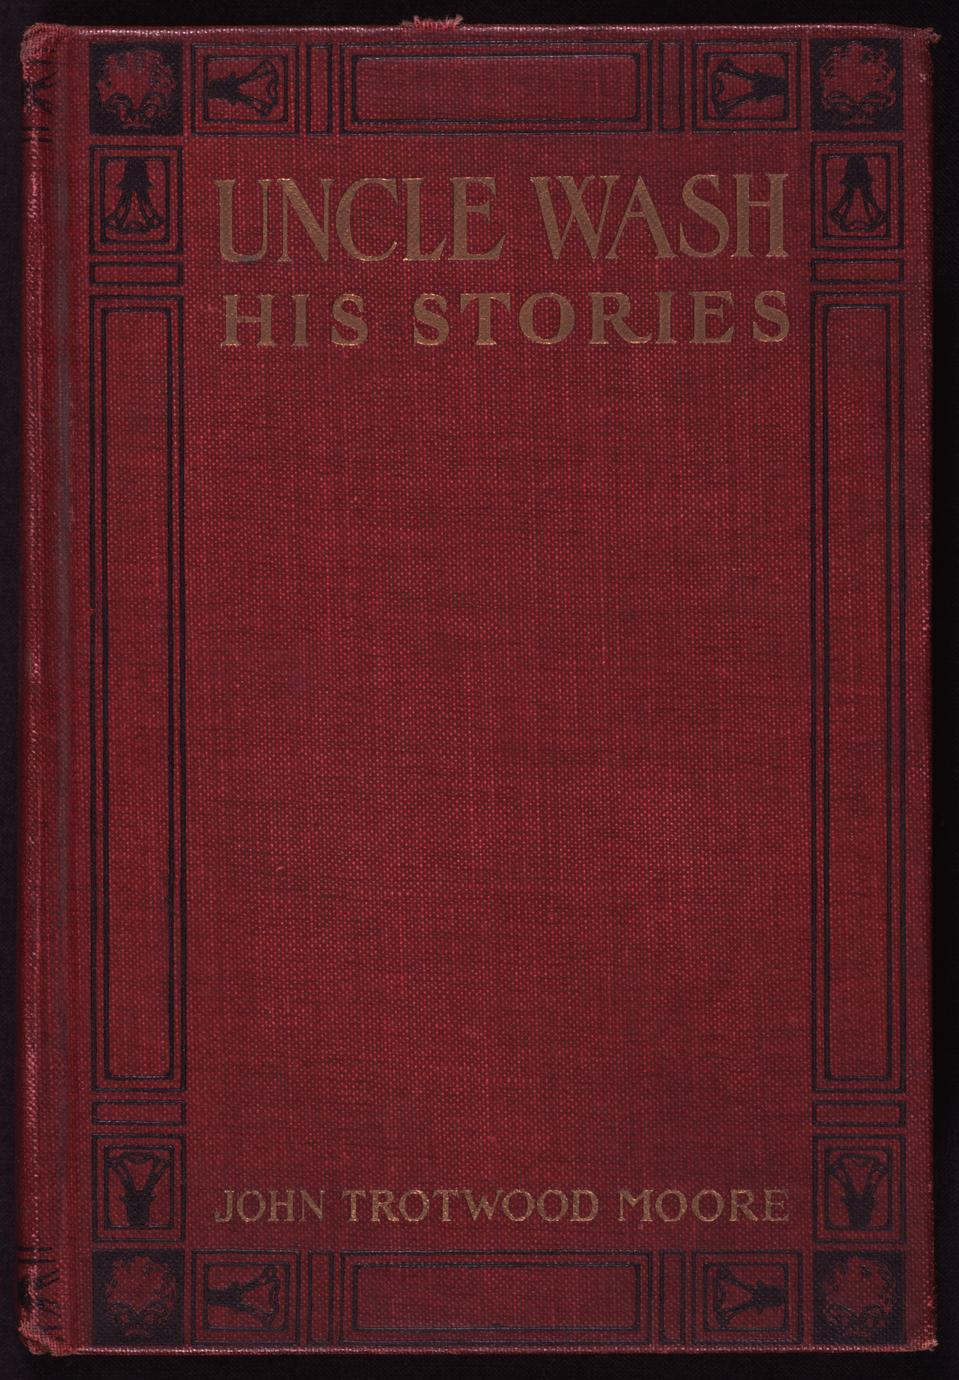 Uncle Wash : his stories (1 of 2)